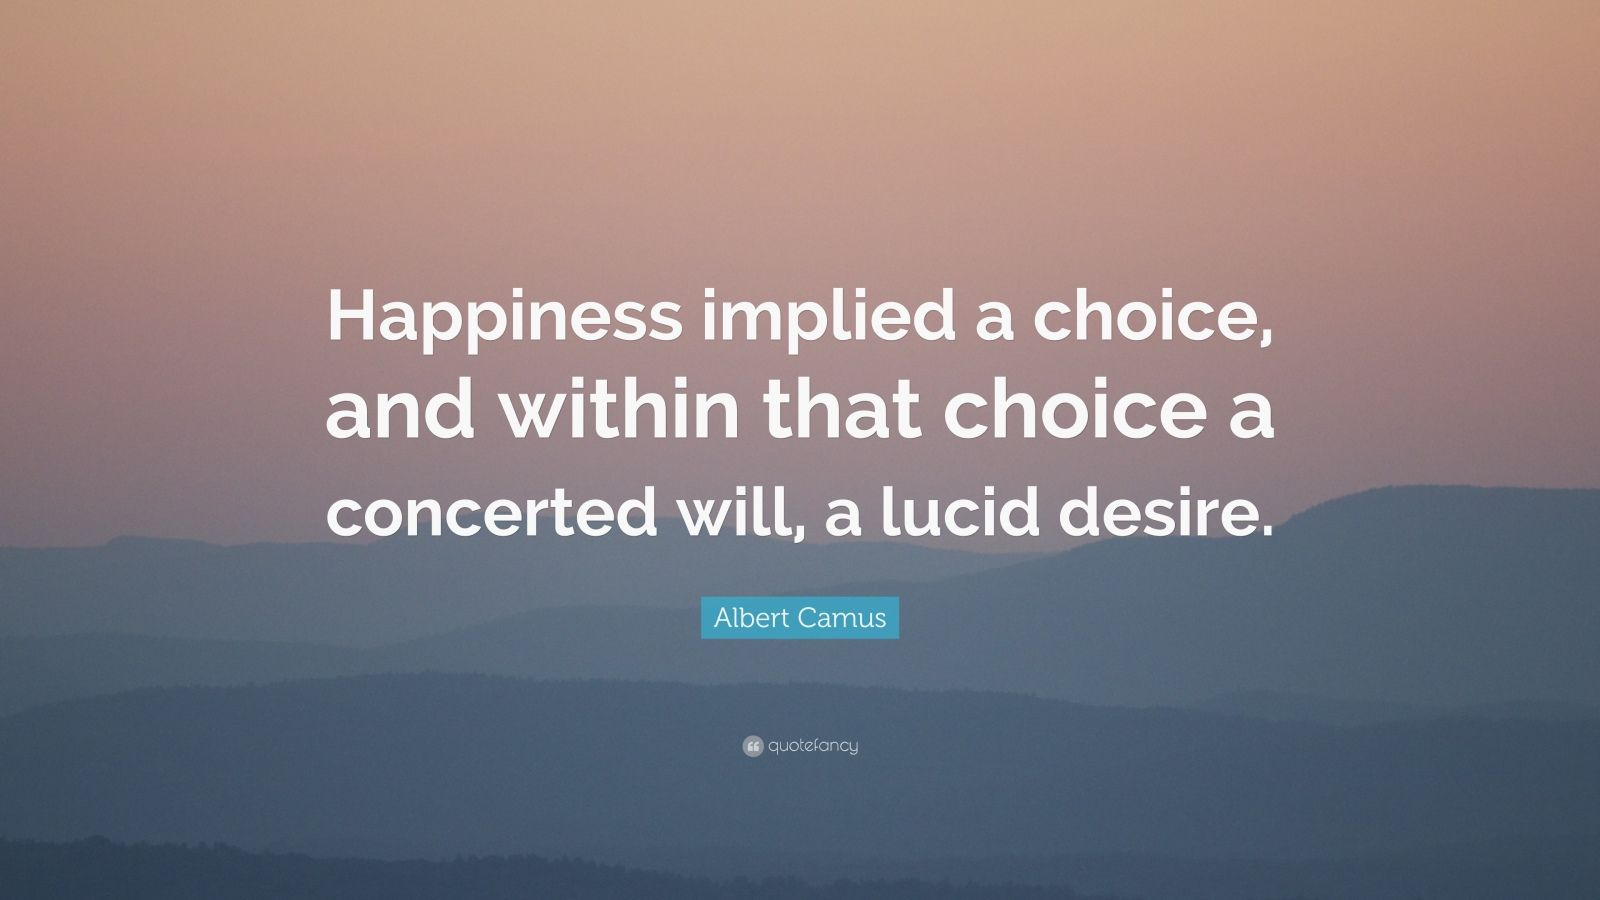 """Albert Camus Quote: """"Happiness implied a choice, and within that choice a concerted will, a lucid desire."""""""